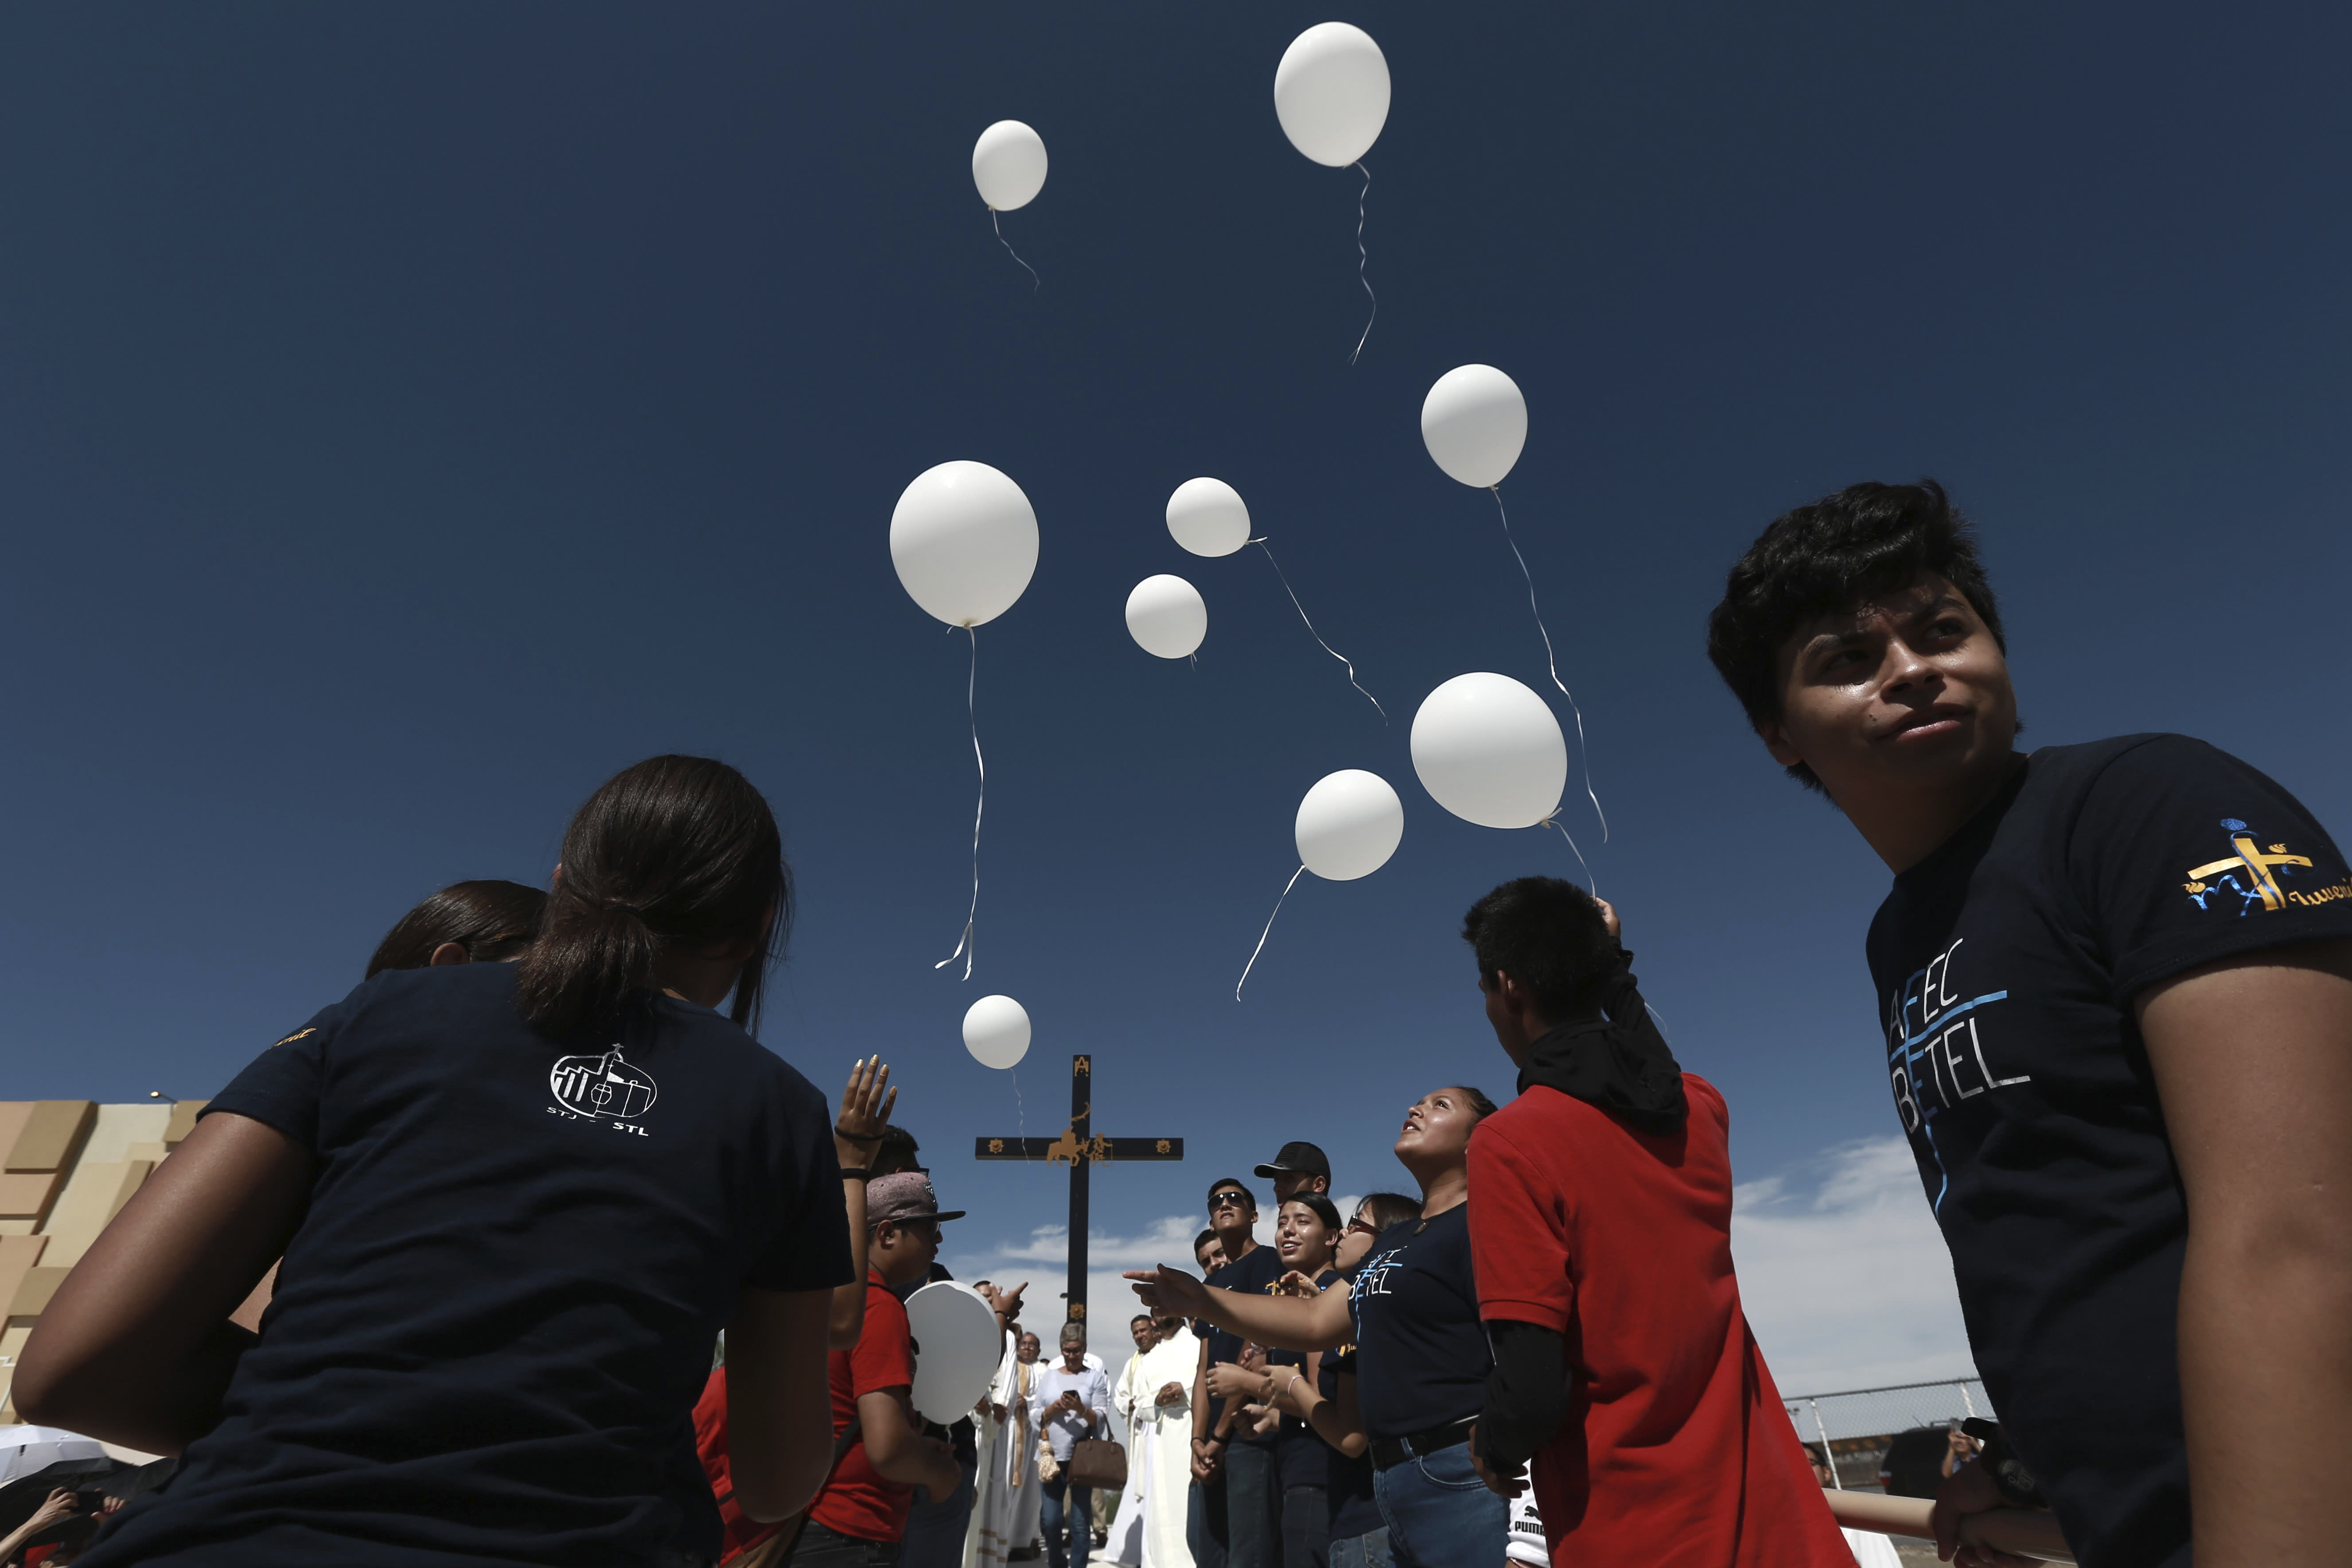 Faithful release balloons during a Mass for peace, in Ciudad Juarez, Mexico, Saturday, Aug. 10, 2019, marking the one week anniversary of a shooting that killed 22 at a Walmart in El Paso. Authorities say the man accused of carrying out last weekend's deadly mass shooting confessed to officers that he had been targeting Mexicans. (AP Photo/Christian Chavez)